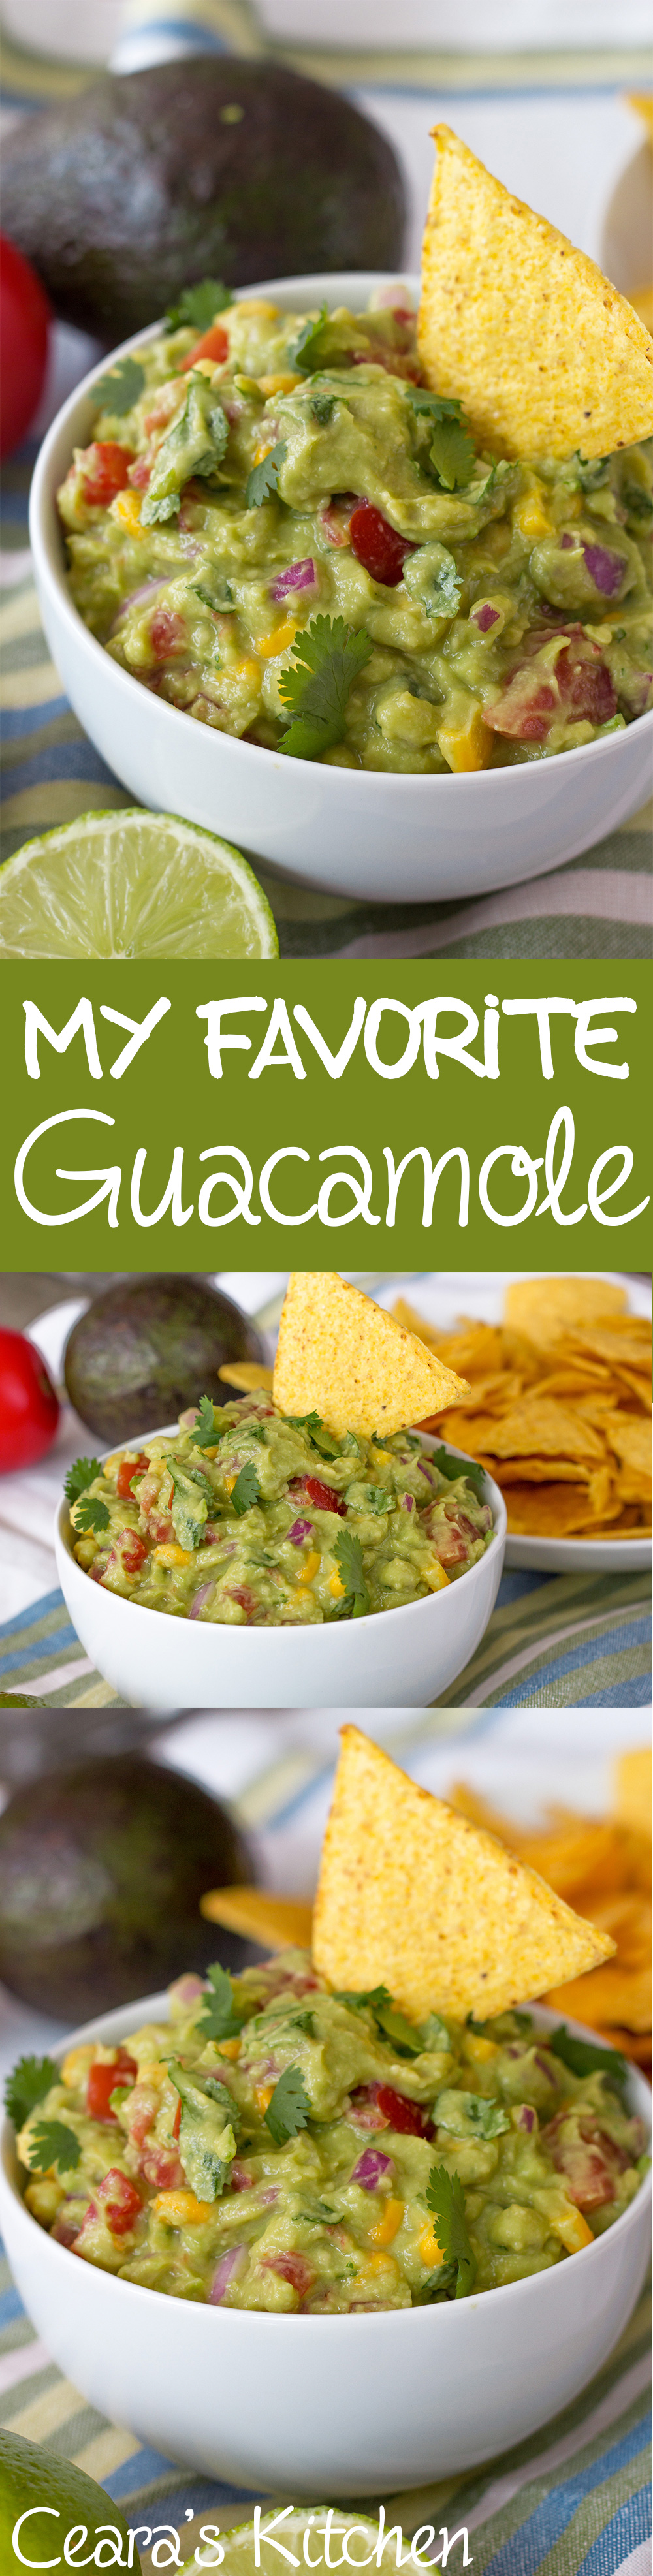 My Favorite Perfect Guacamole | Ceara's Kitchen